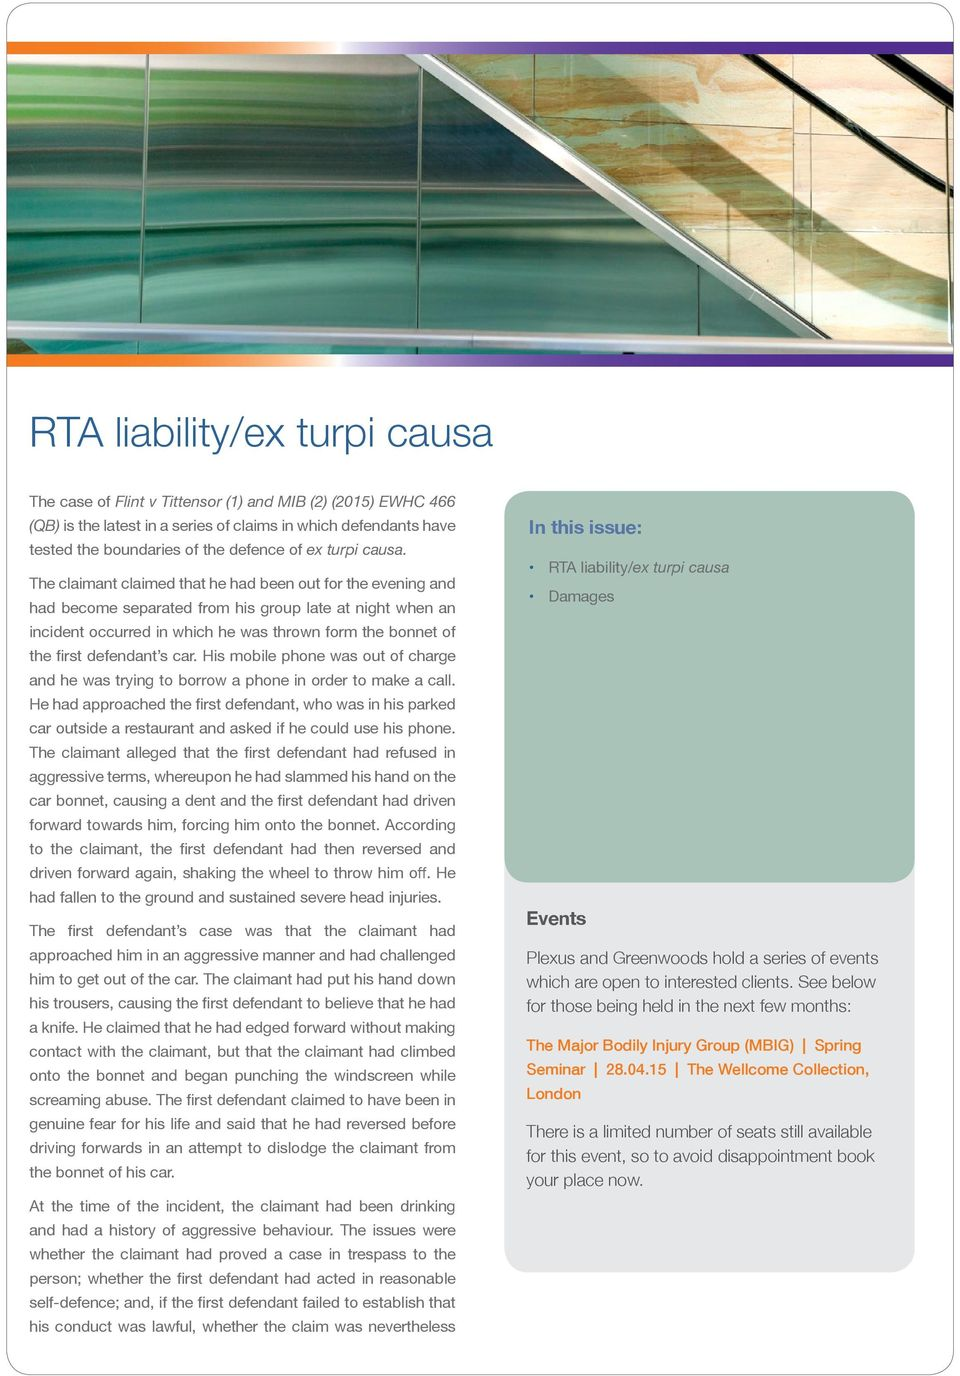 The claimant claimed that he had been out for the evening and had become separated from his group late at night when an incident occurred in which he was thrown form the bonnet of the first defendant